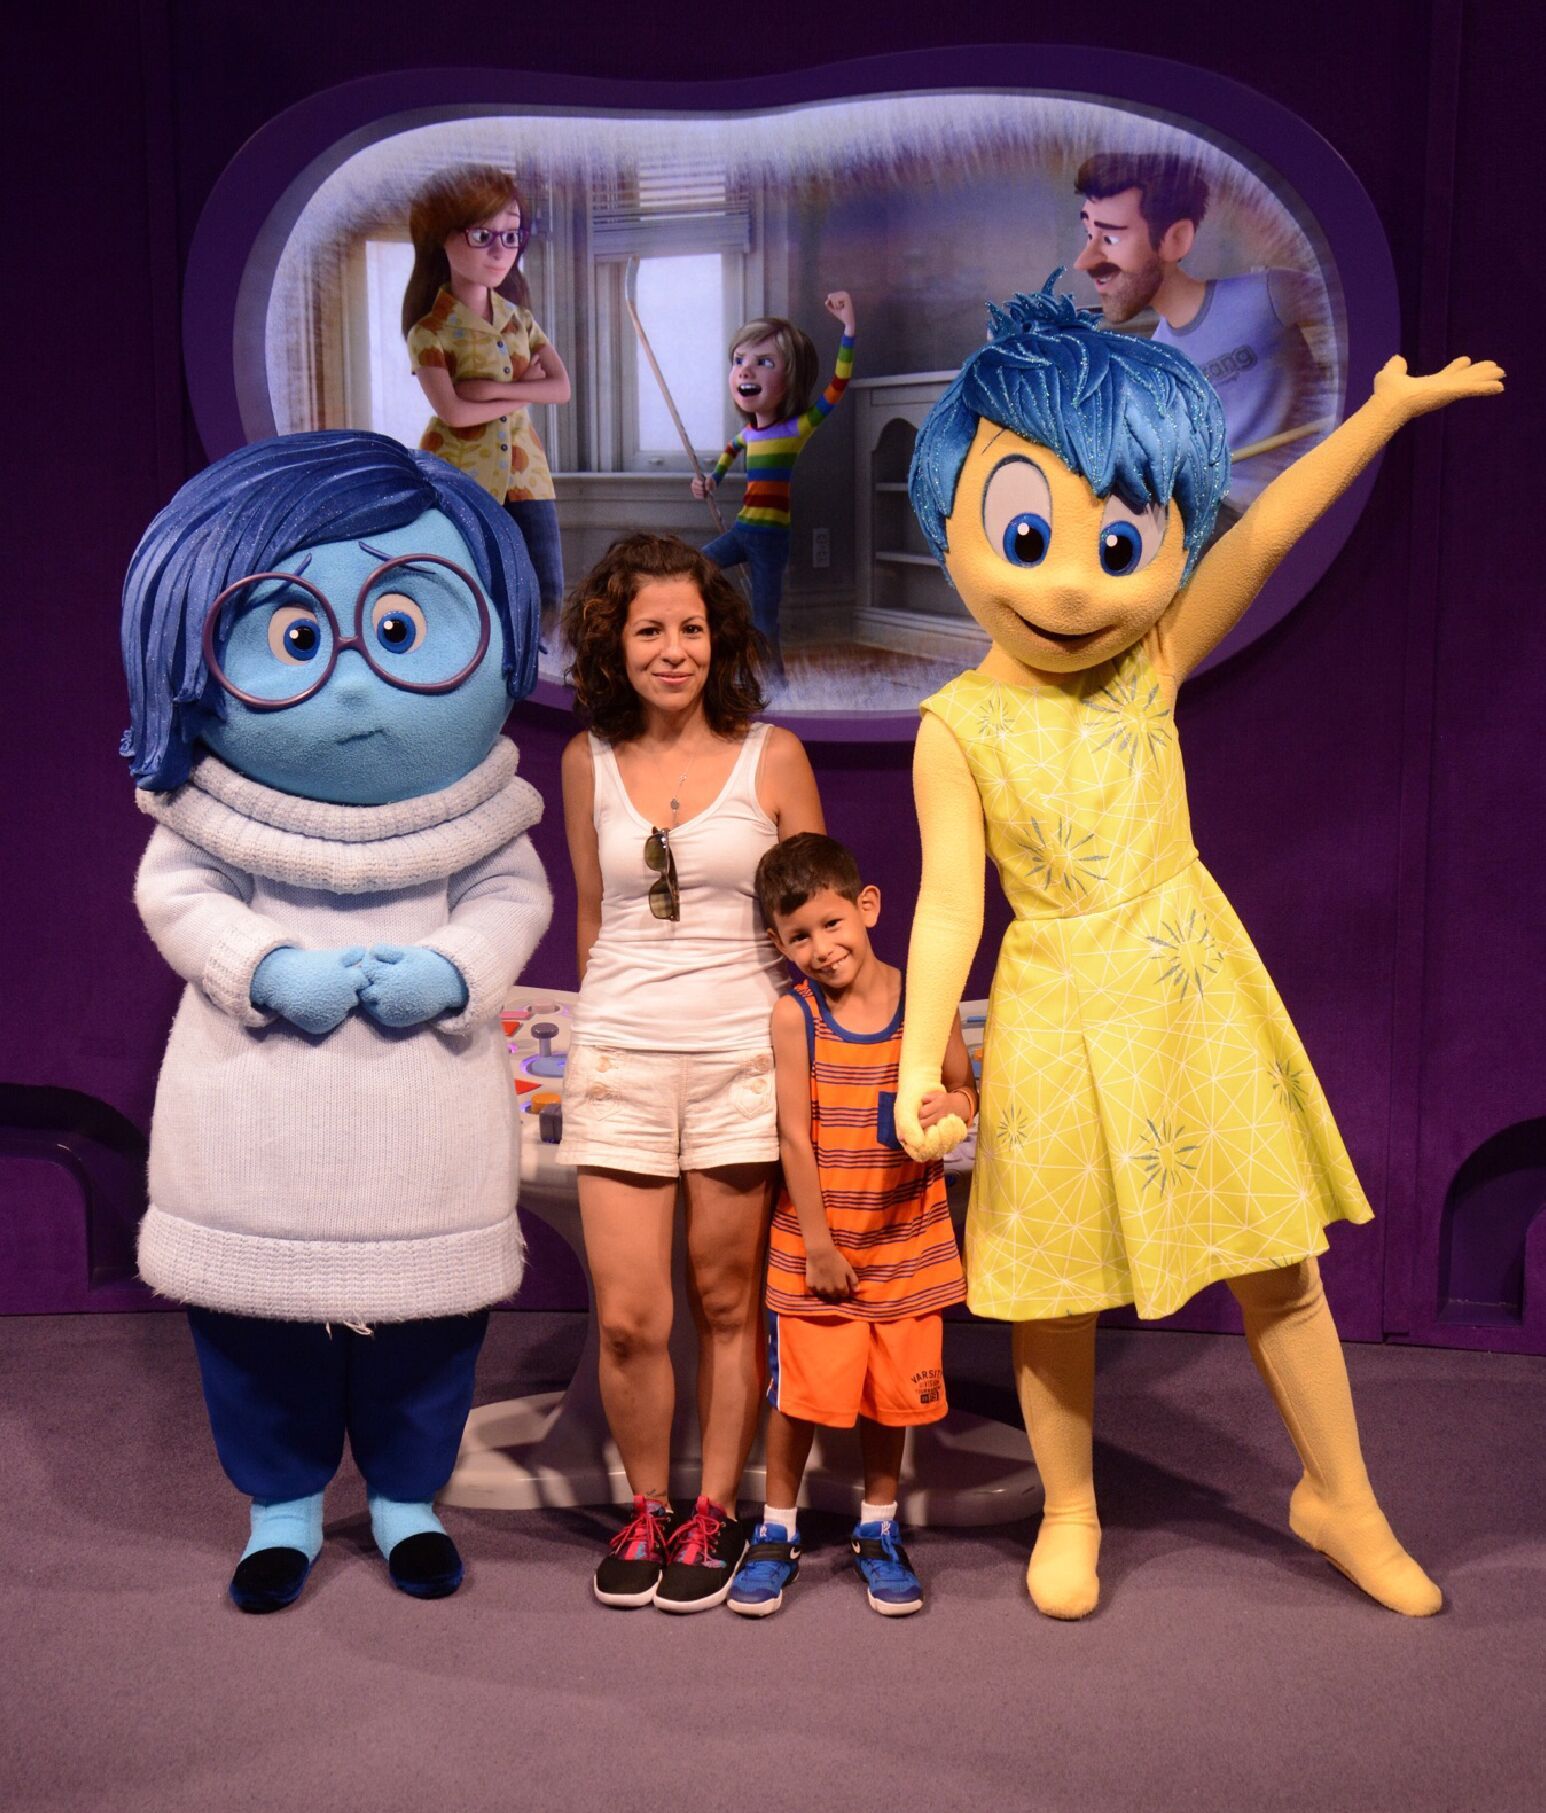 Mother and son on vacation pose with theme park characters